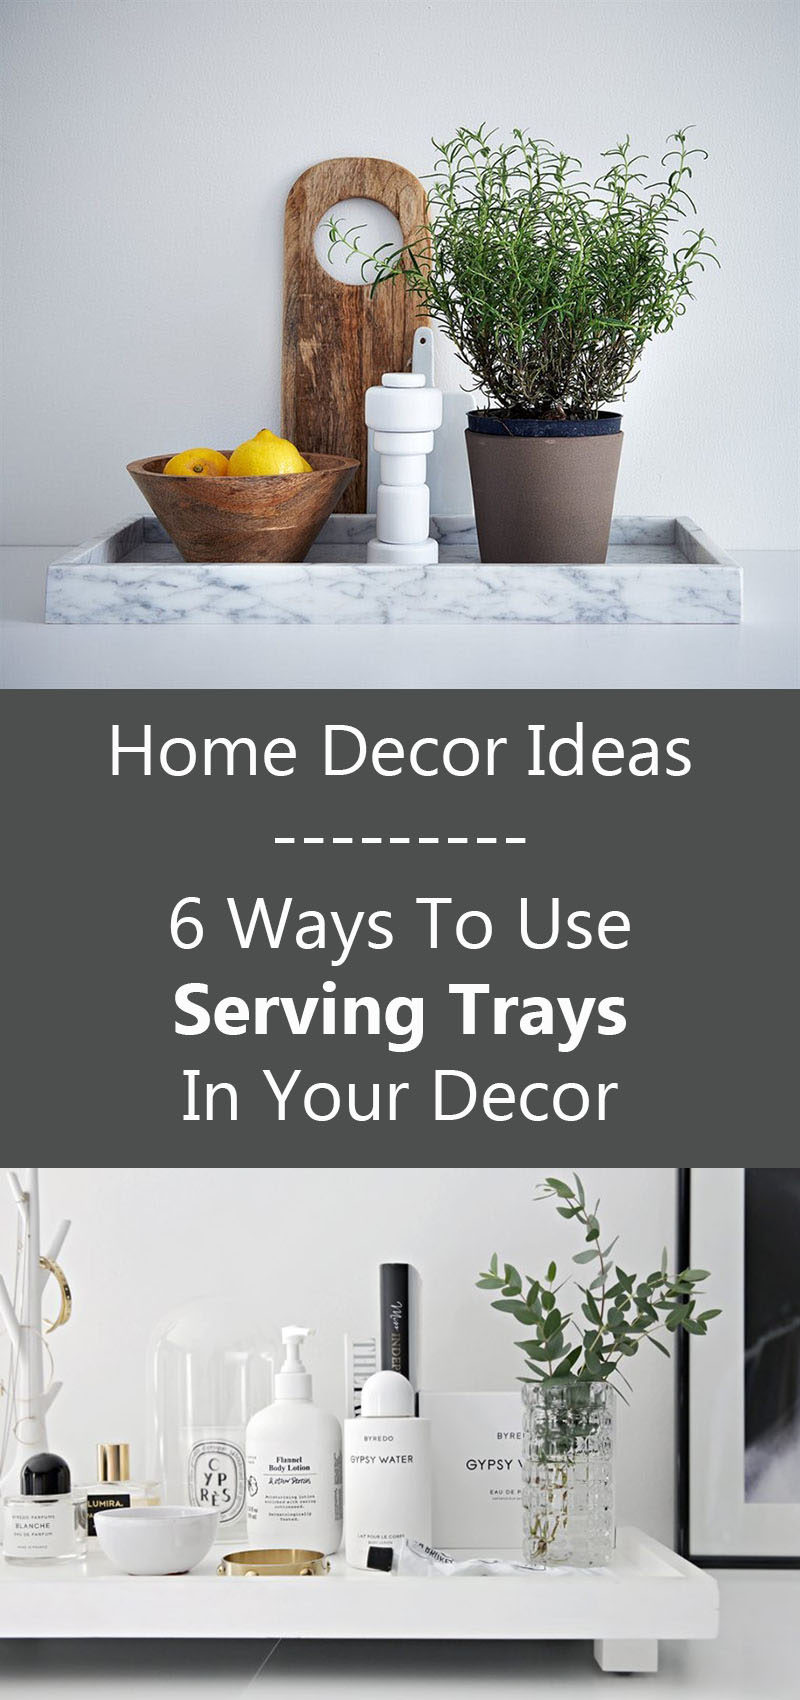 Home Decor Ideas - 6 Ways To Use Serving Trays In Your Decor